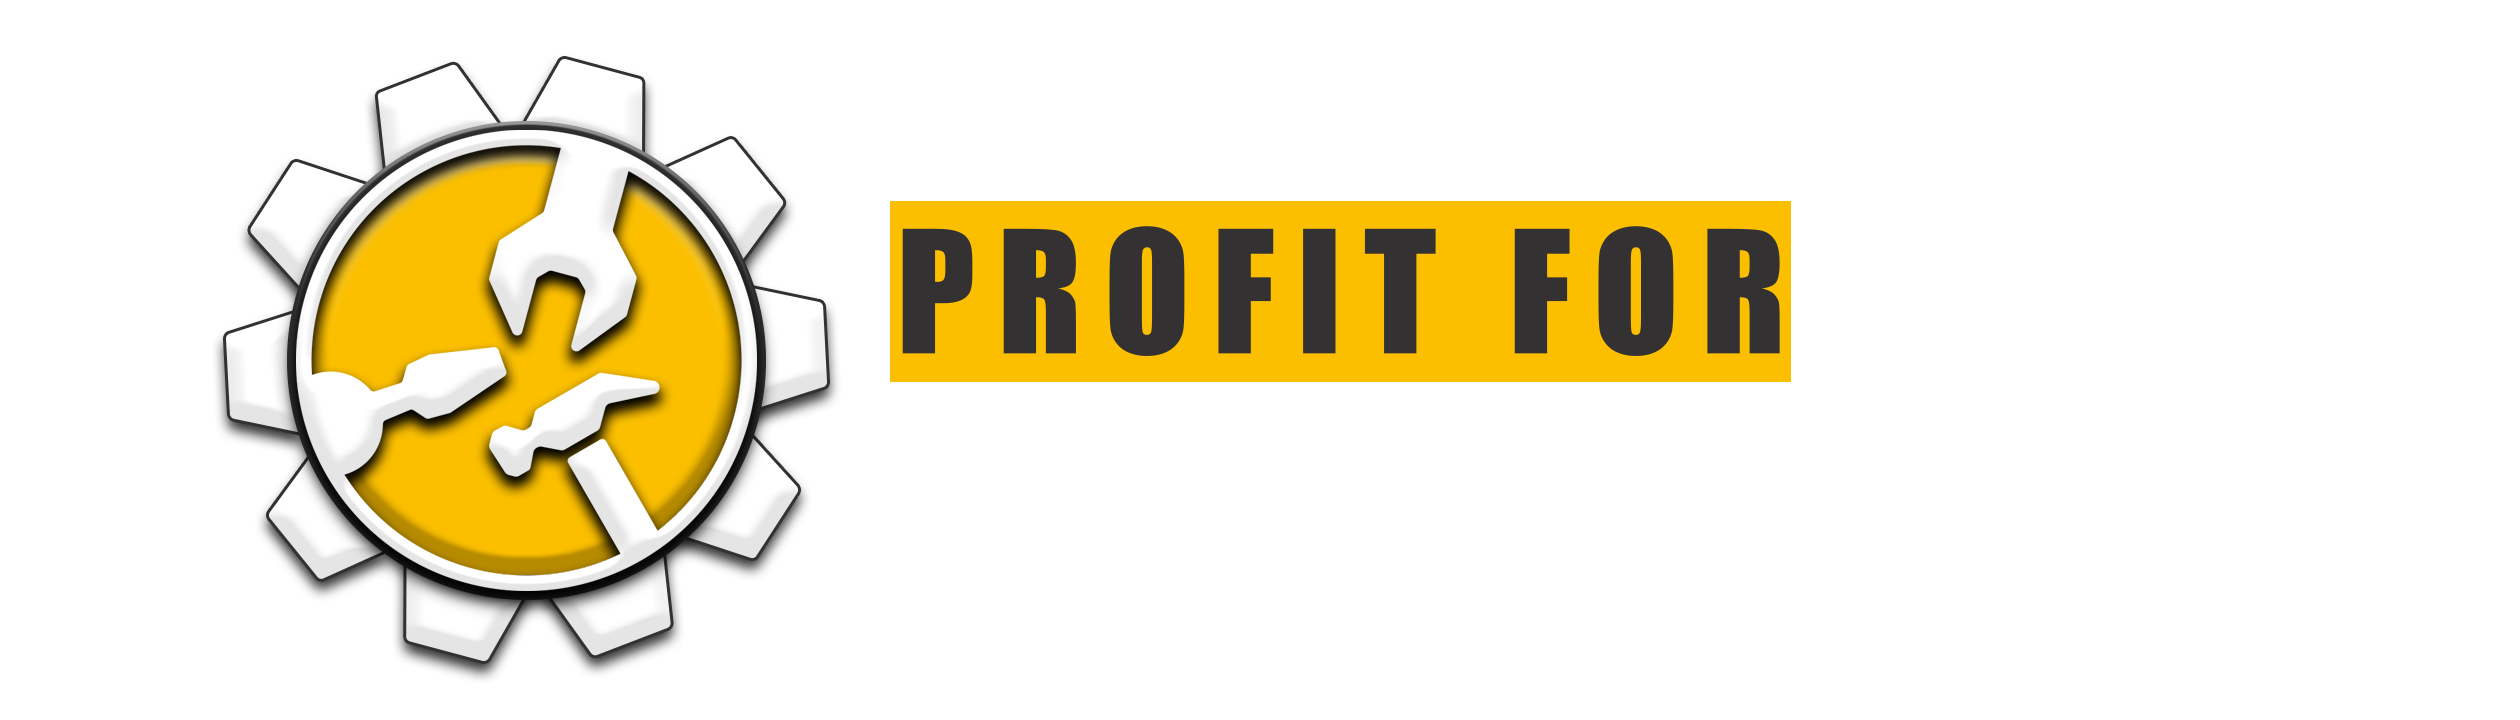 Profit For Contractors Logo